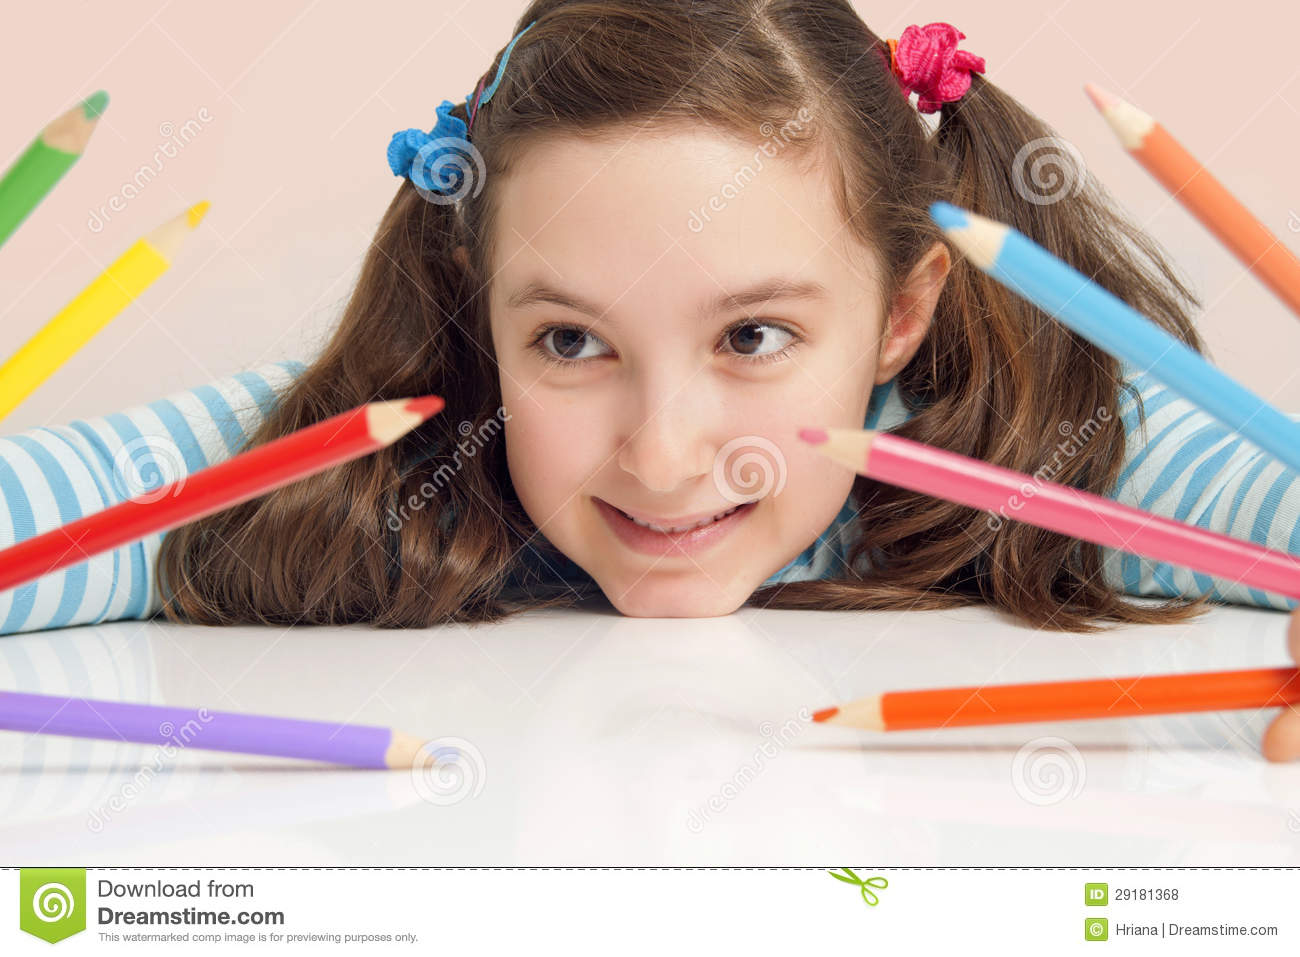 Smiling girl holding color pencils